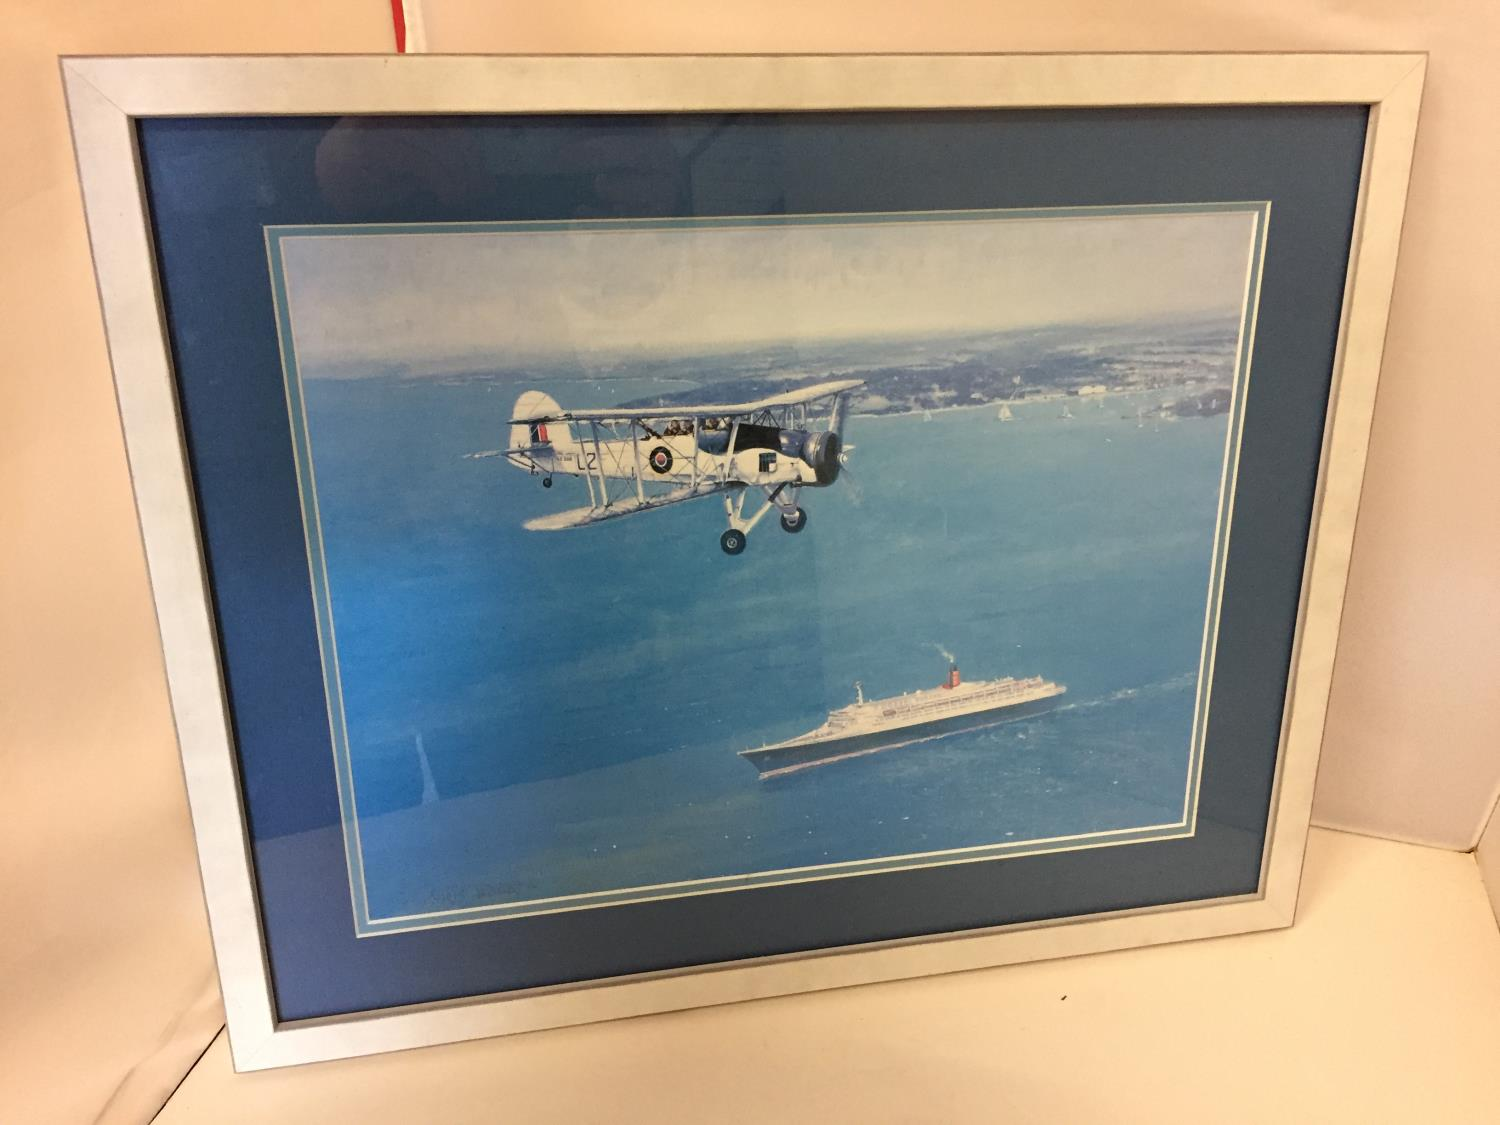 A FRAMED COLOURED PICTURE OF A SWORDFISH PLANE FLYING OVER A CRUISE SHIP 30CM X 40CM